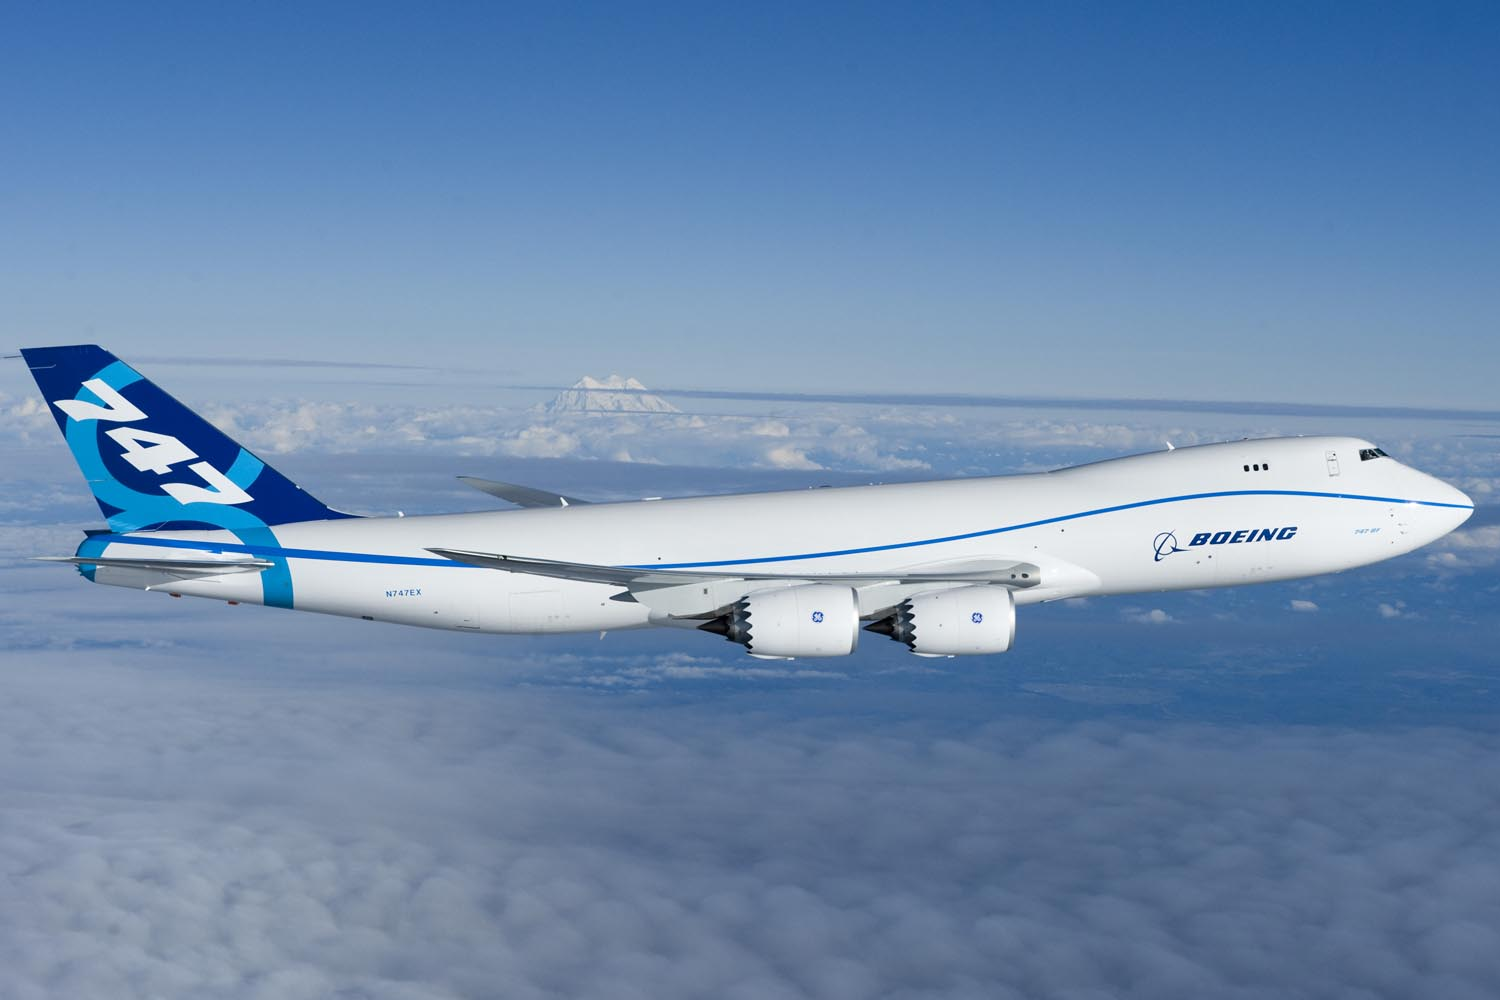 Side view of quadjet over clouds